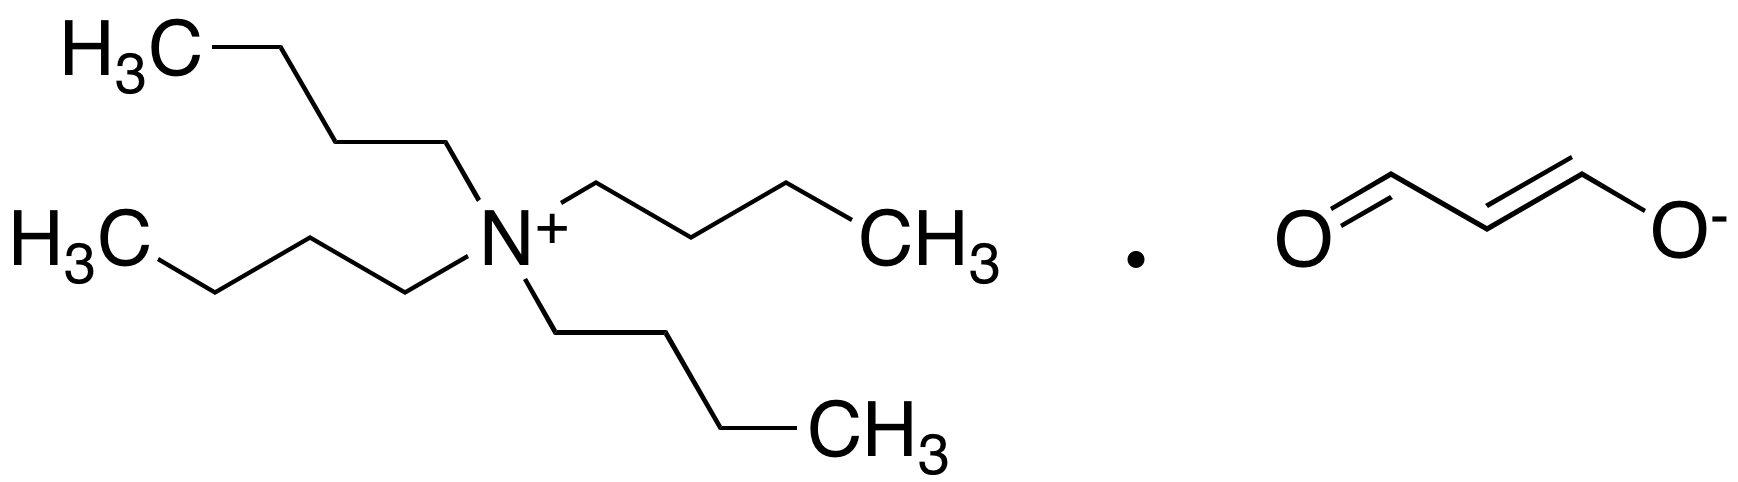 N,N,N-Tributyl-1-butanaminium Salt with (E)-3-Hydroxy-2-propenal